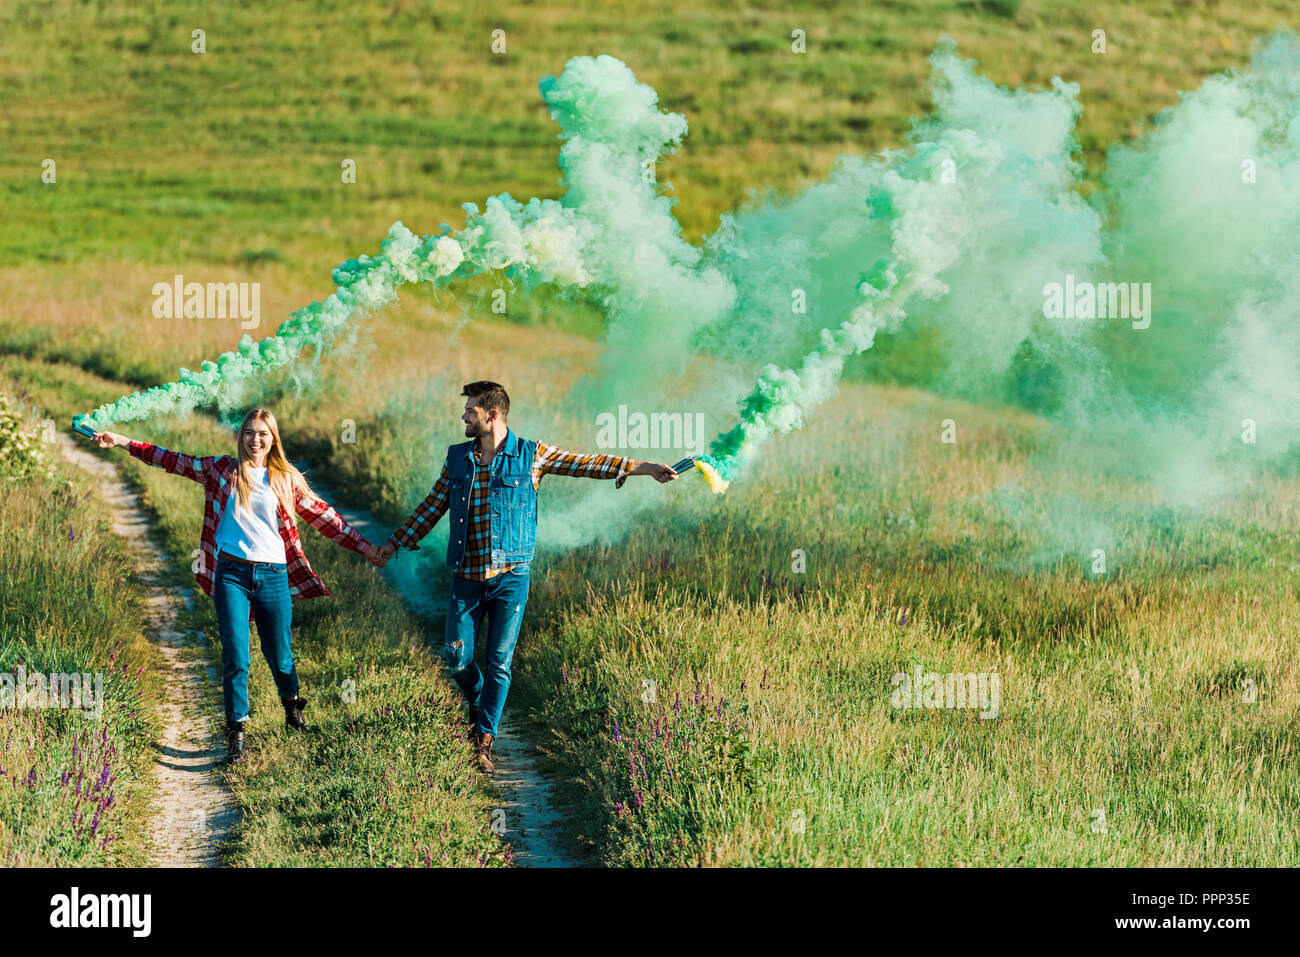 front view of young couple holding green smoke bombs on rural meadow - Stock Image